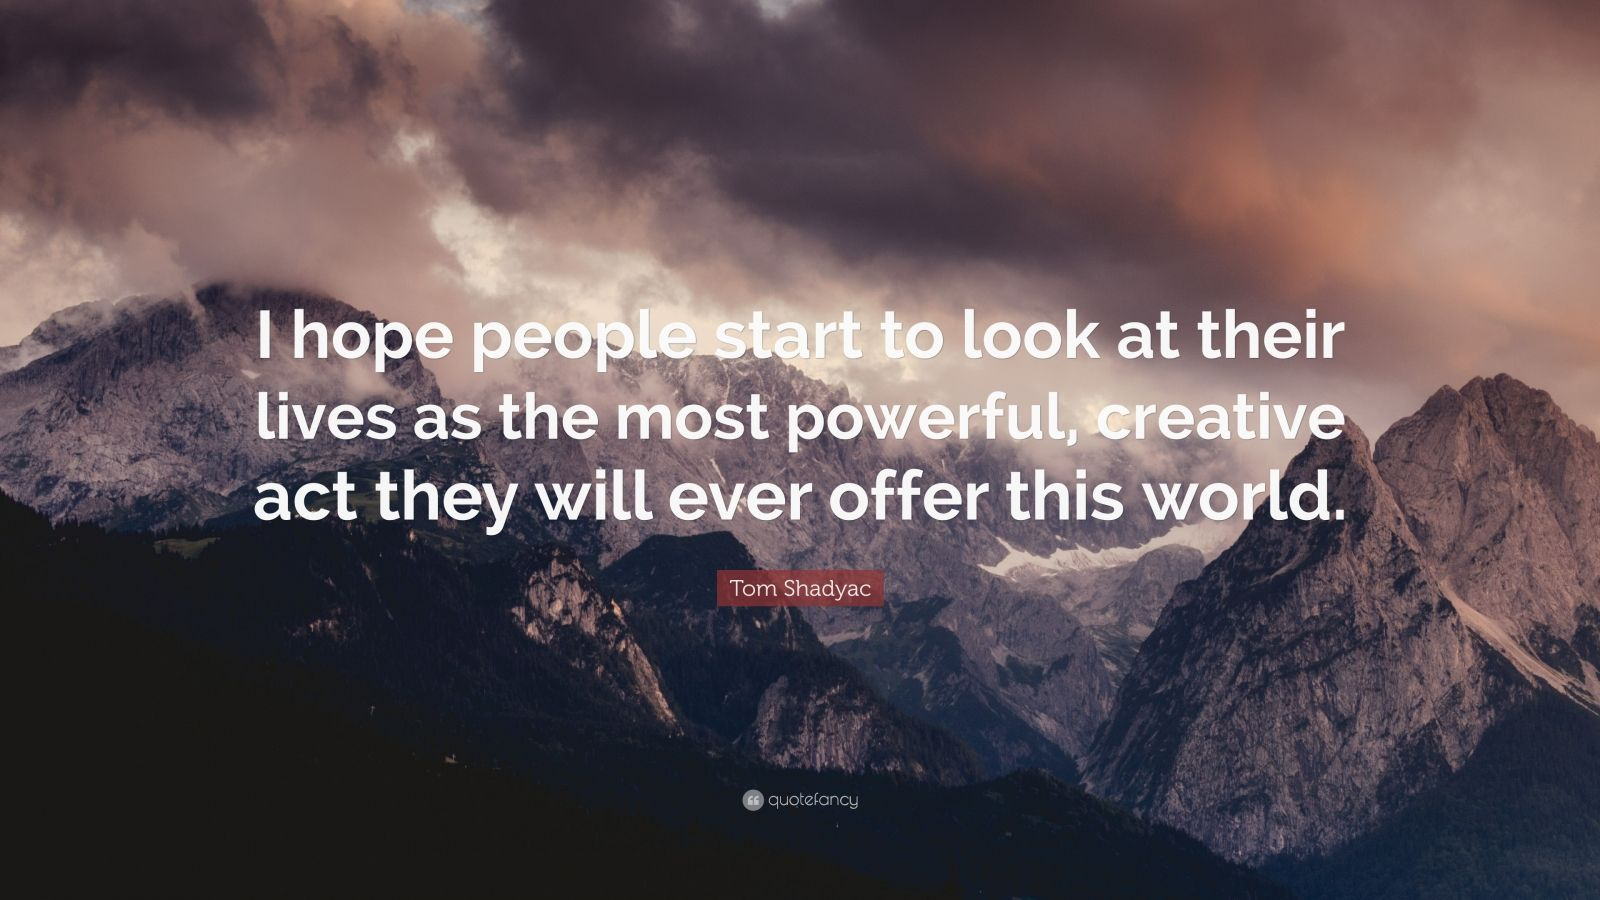 """Tom Shadyac Quote: """"I hope people start to look at their lives as the most powerful, creative act they will ever offer this world."""""""